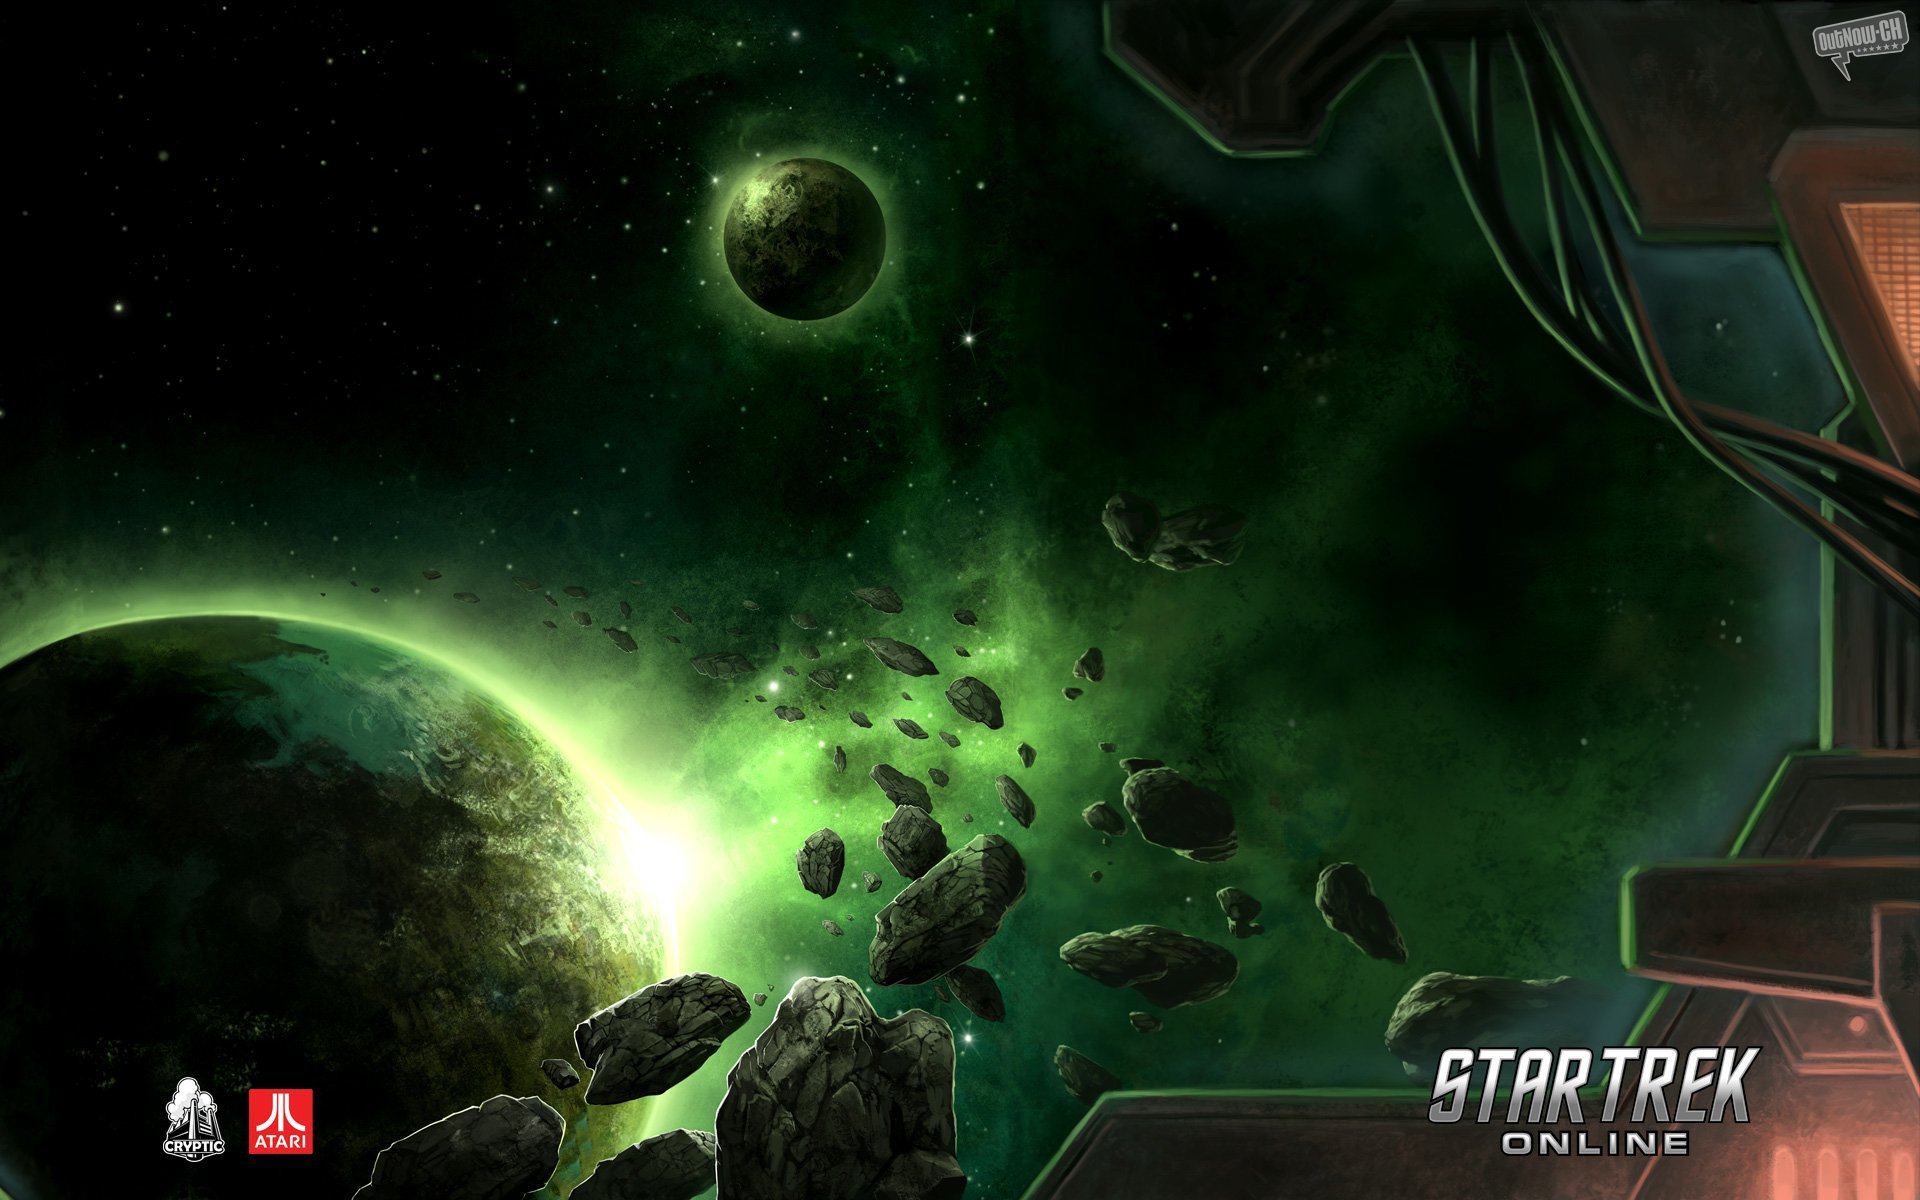 Devil 3d Hd Wallpapers Star Trek Online Wallpapers Star Trek Online Stock Photos